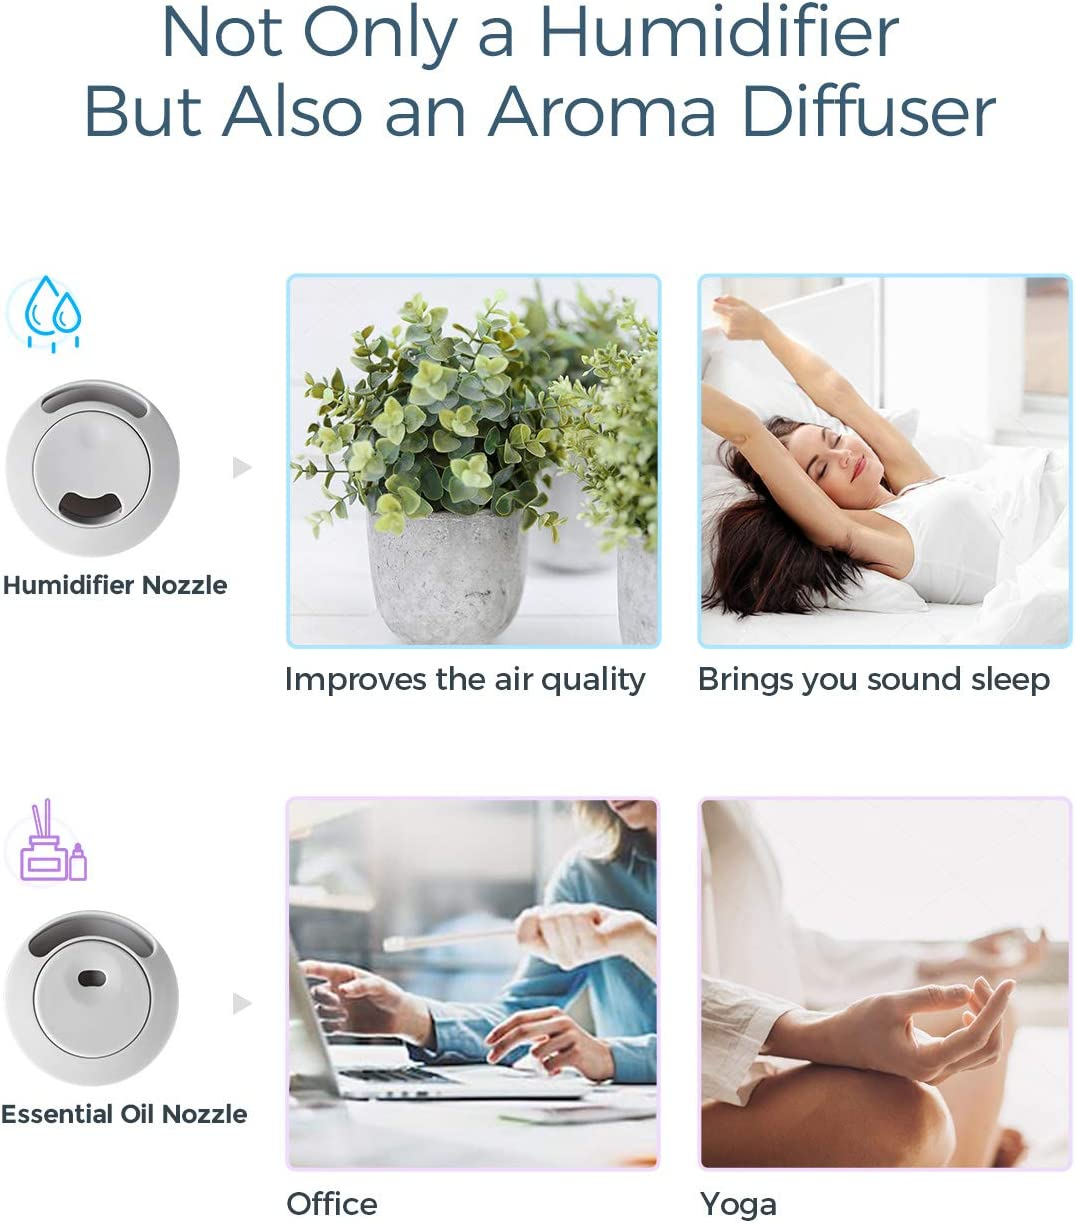 Ultrasonic Humidifiers for Bedroom Auto Shut-off 28dB Super-Quiet Air Humidifier for Cough Homasy Cool Mist Humidifiers 4.5L Baby Room-Grey UPGRADED Aroma Oil Diffuser with 30 Working Hours